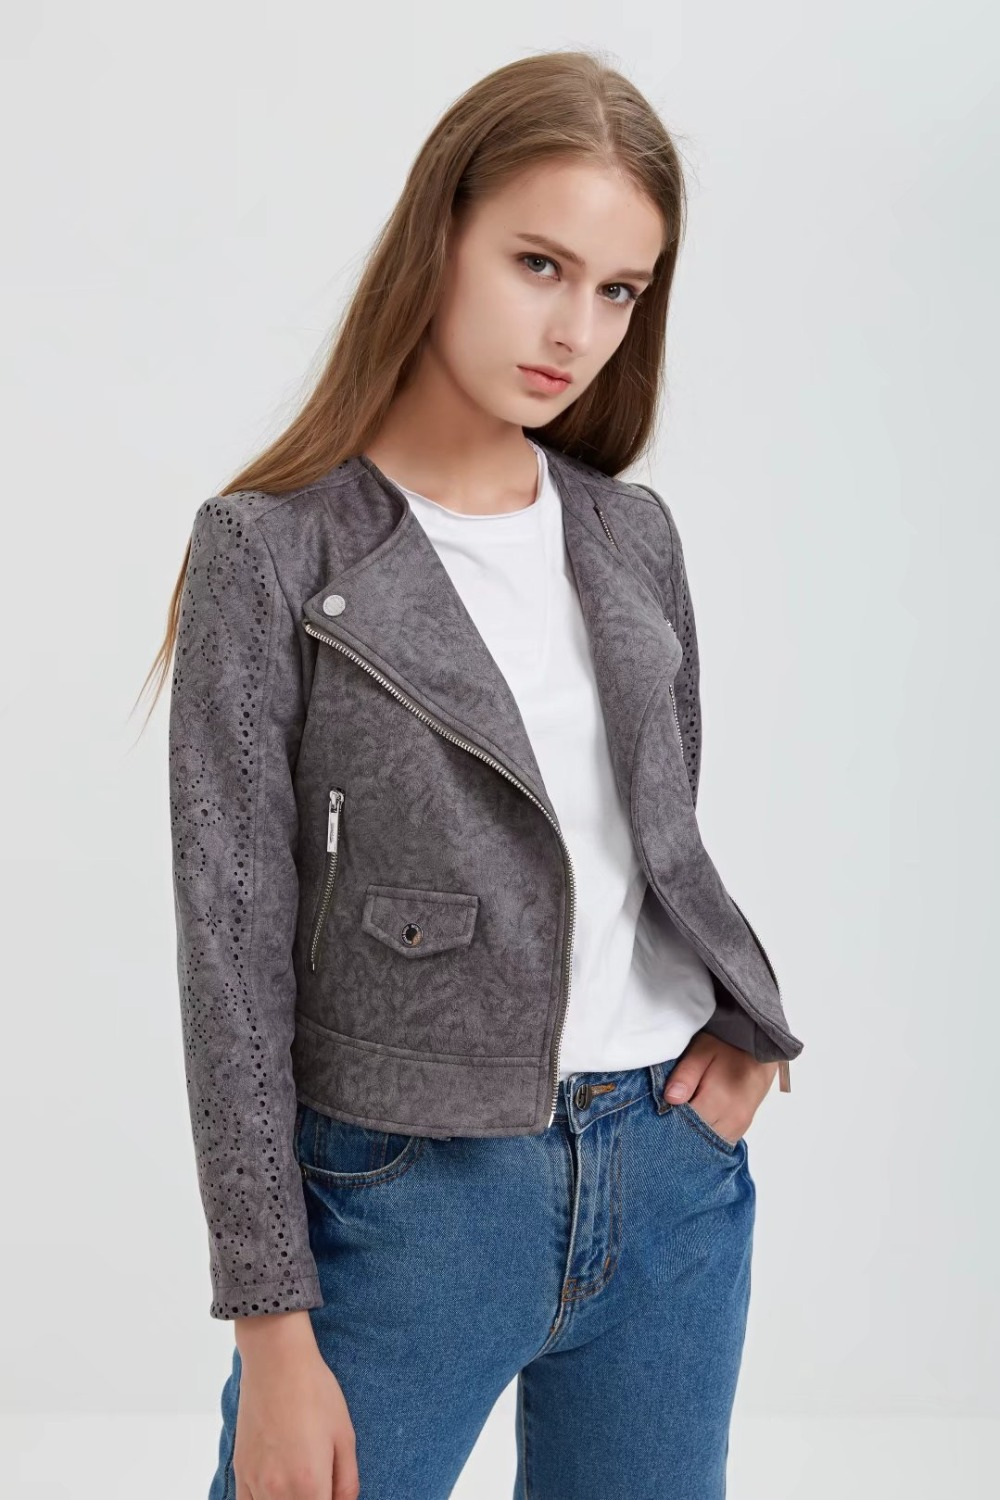 Carved Brogue Women Soft   Suede   Faux   Leather   Jackets Vintage Turn-Down Collar Zipper Hollow Out Matte Coat Retro Grey Outterwears